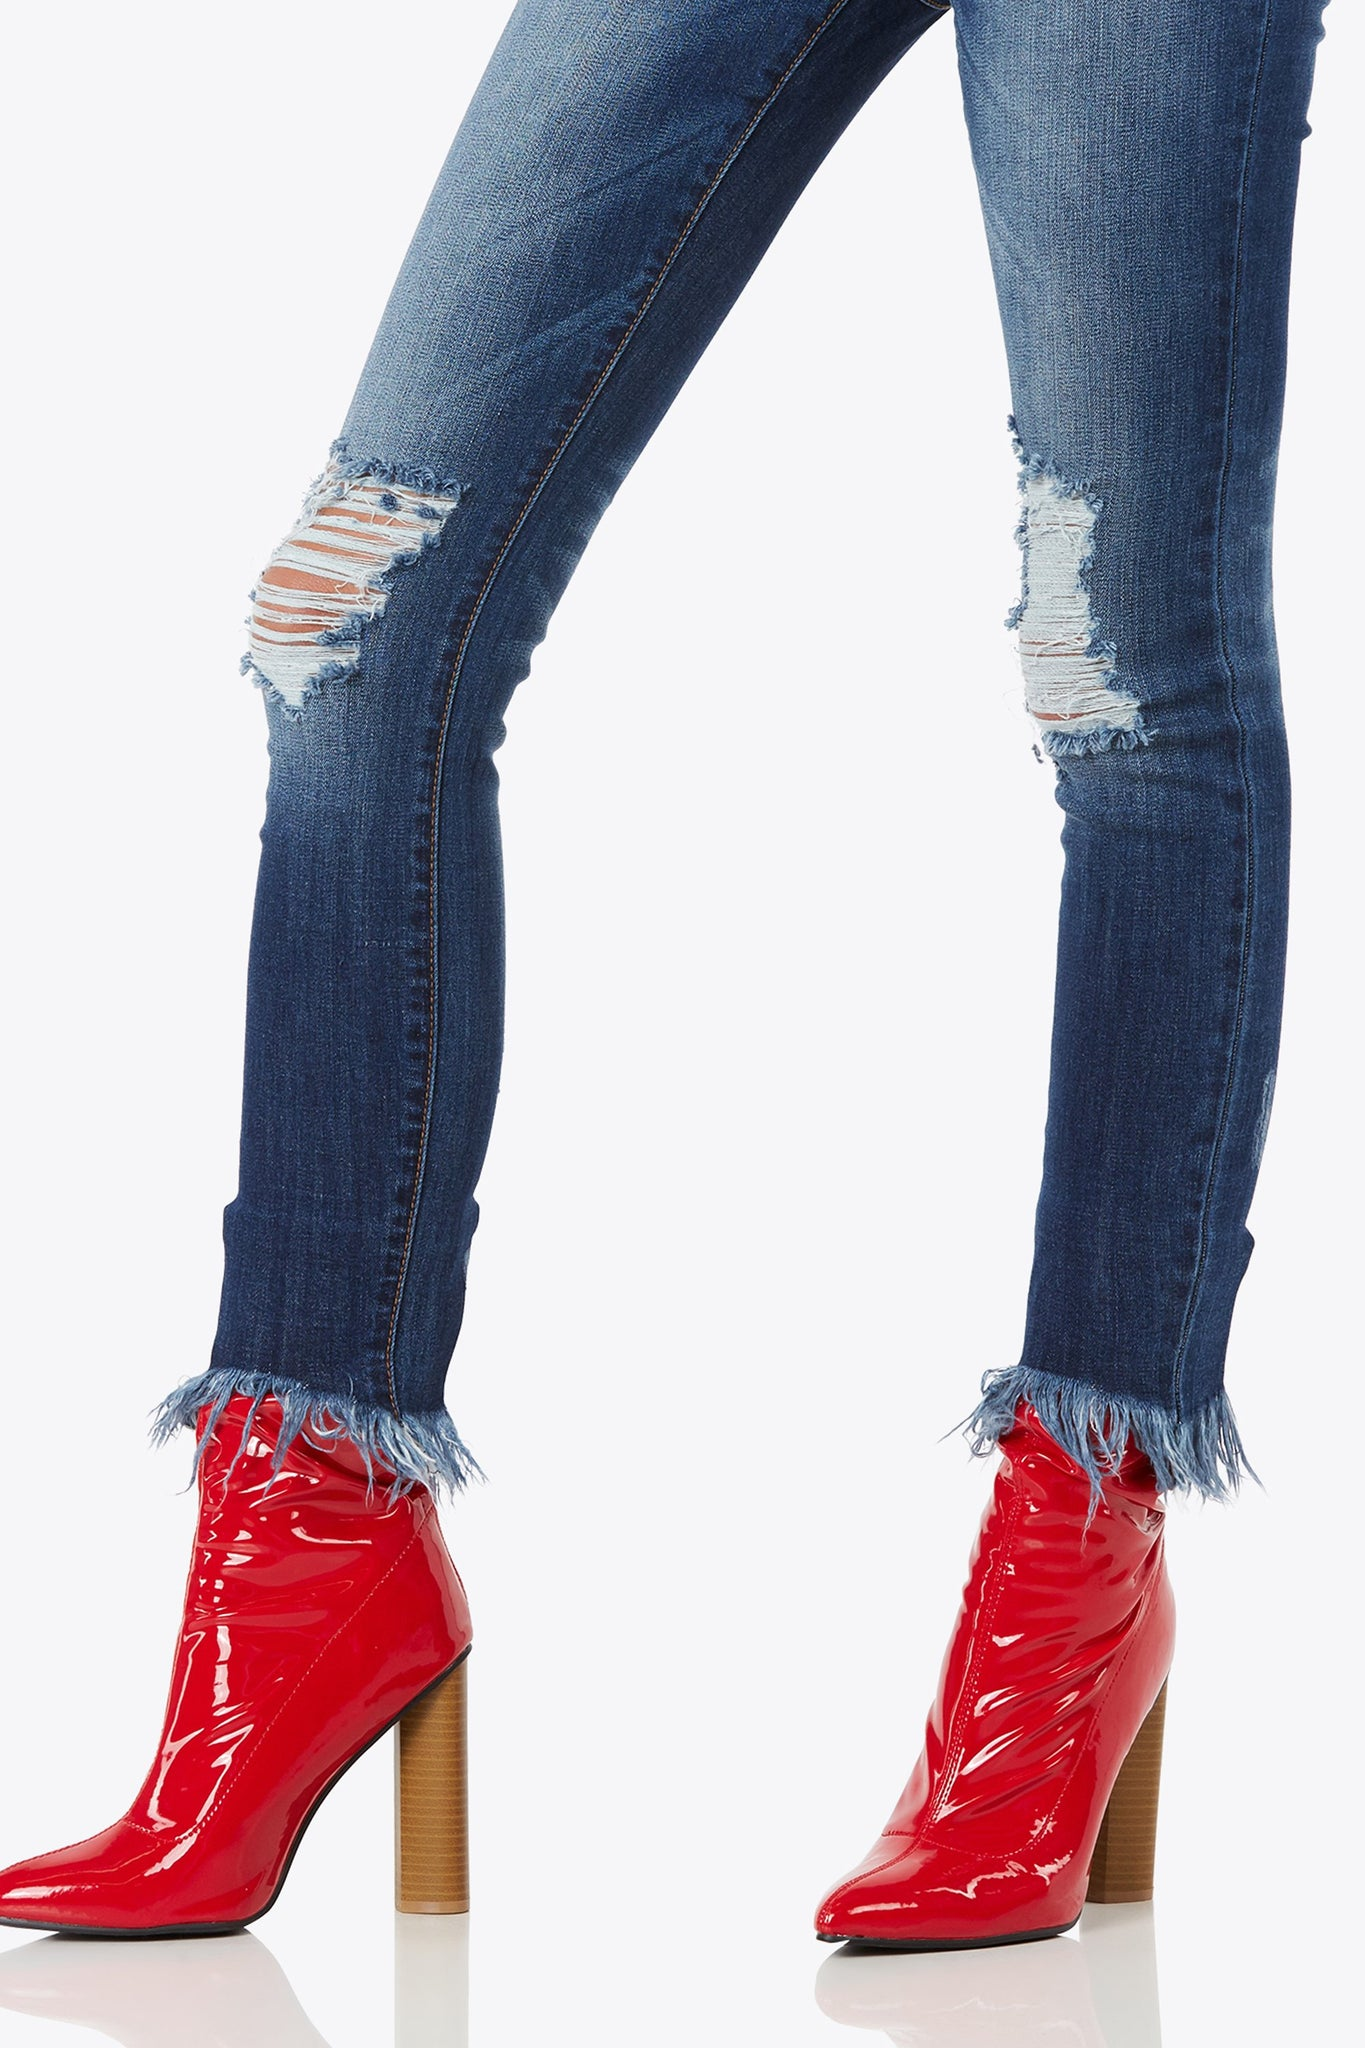 Enjoy the flexible fit classic skinny jean with distressed accents on legs and hem.